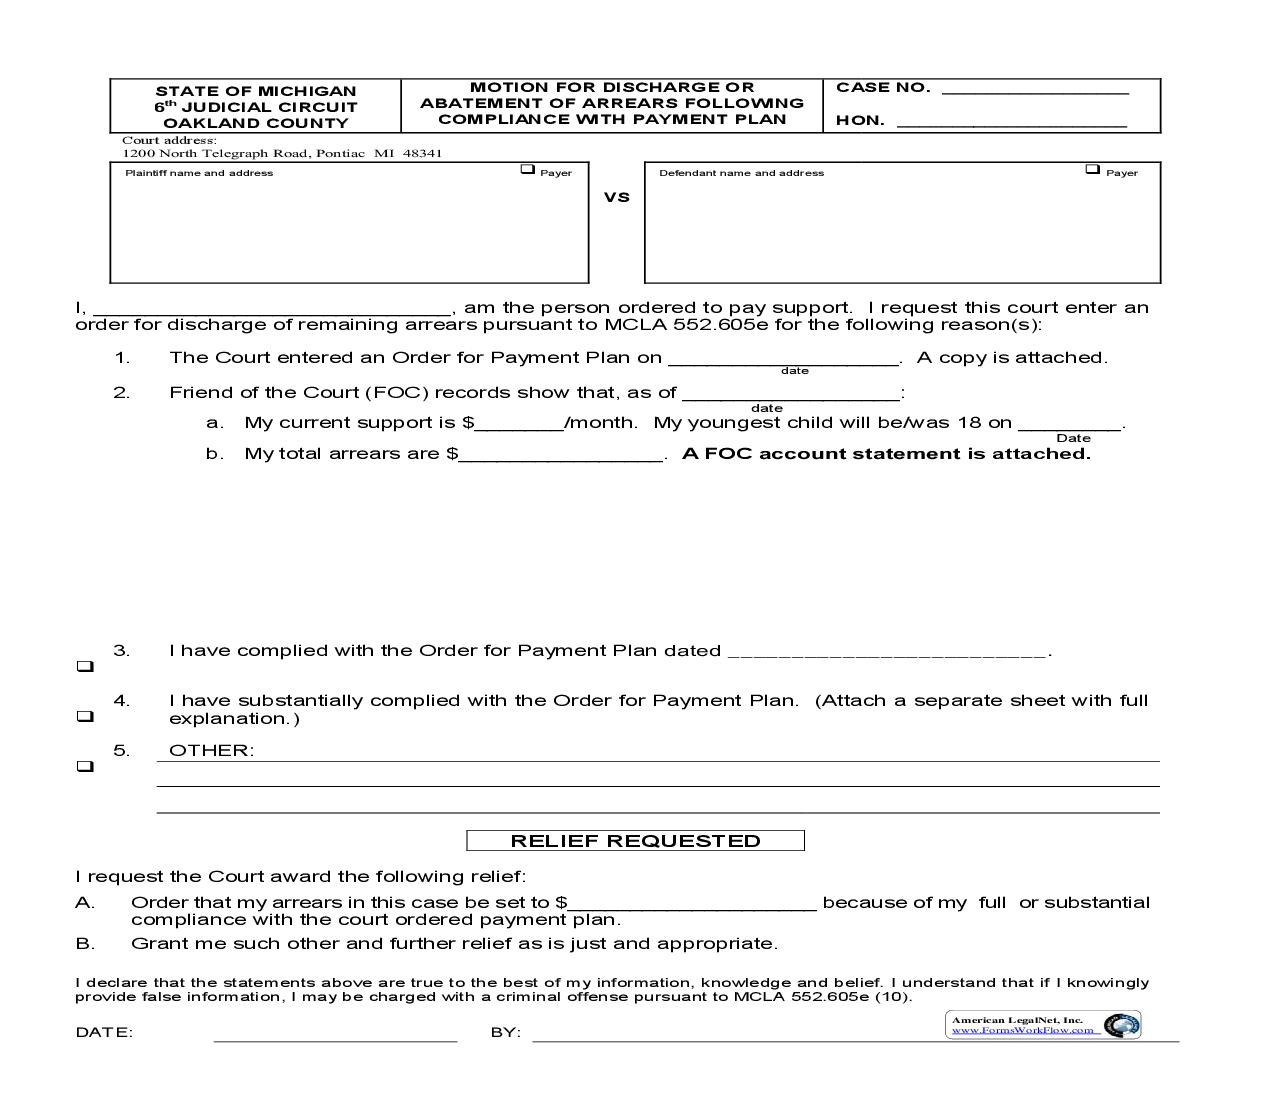 Motion For Discharge Or Abatement Of Arrears Following compliance With Payment Plan   Pdf Fpdf Doc Docx   Michigan